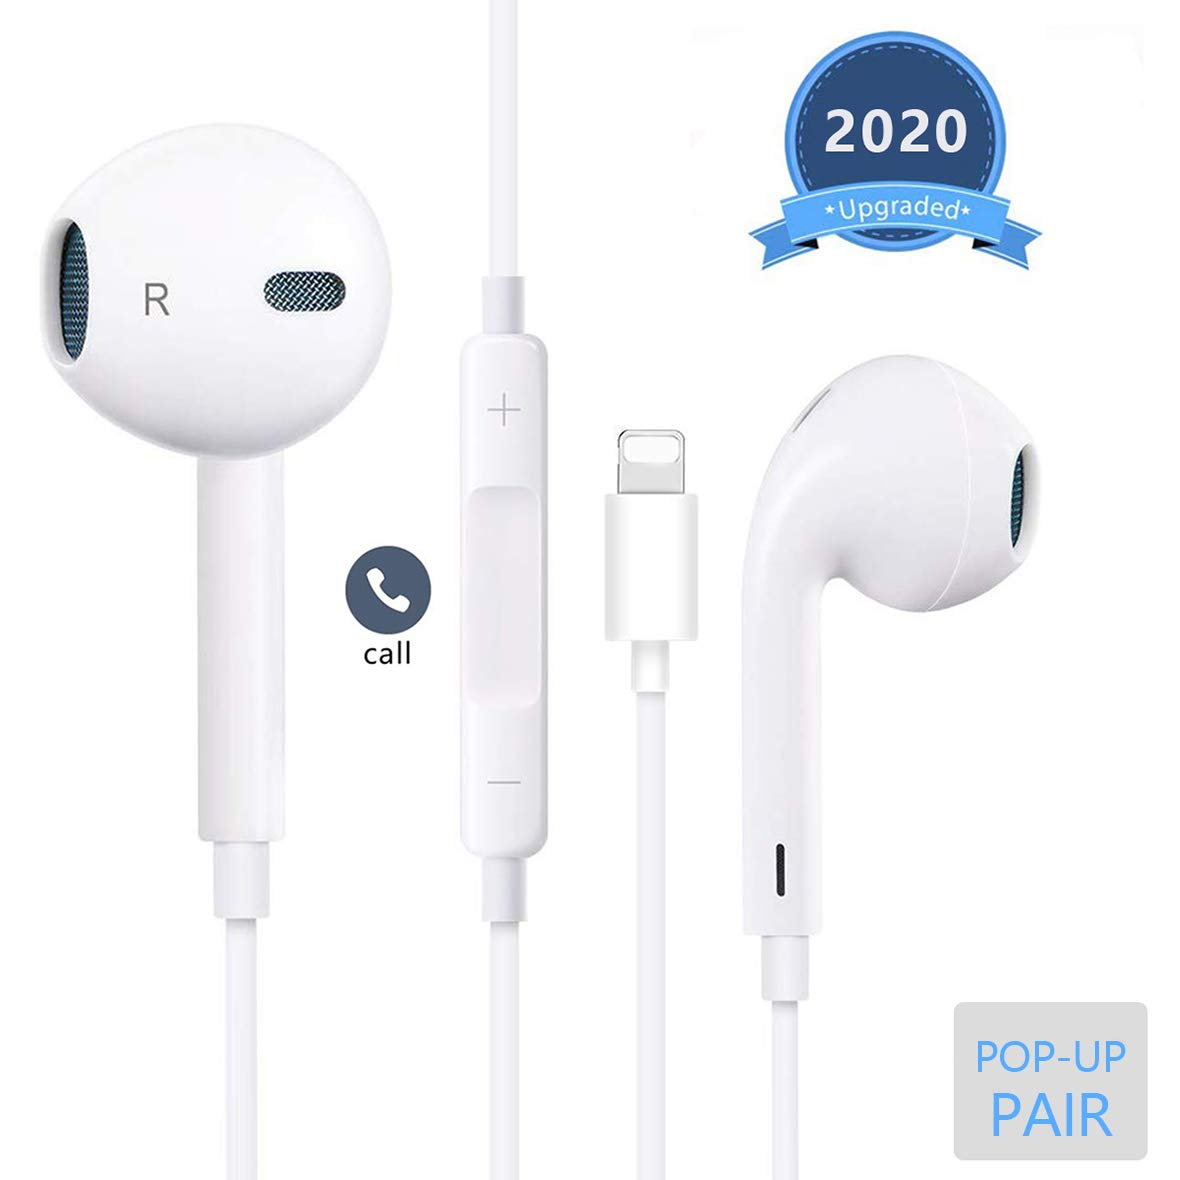 Lighting Earphones Connector Pop-up Pair Earbuds Headphones Noise Isolating Headset Support Call Volume Control Compatible with iPhone 7/7 Plus/8/8 Plus/X 10/XS Max/XR for iOS 12